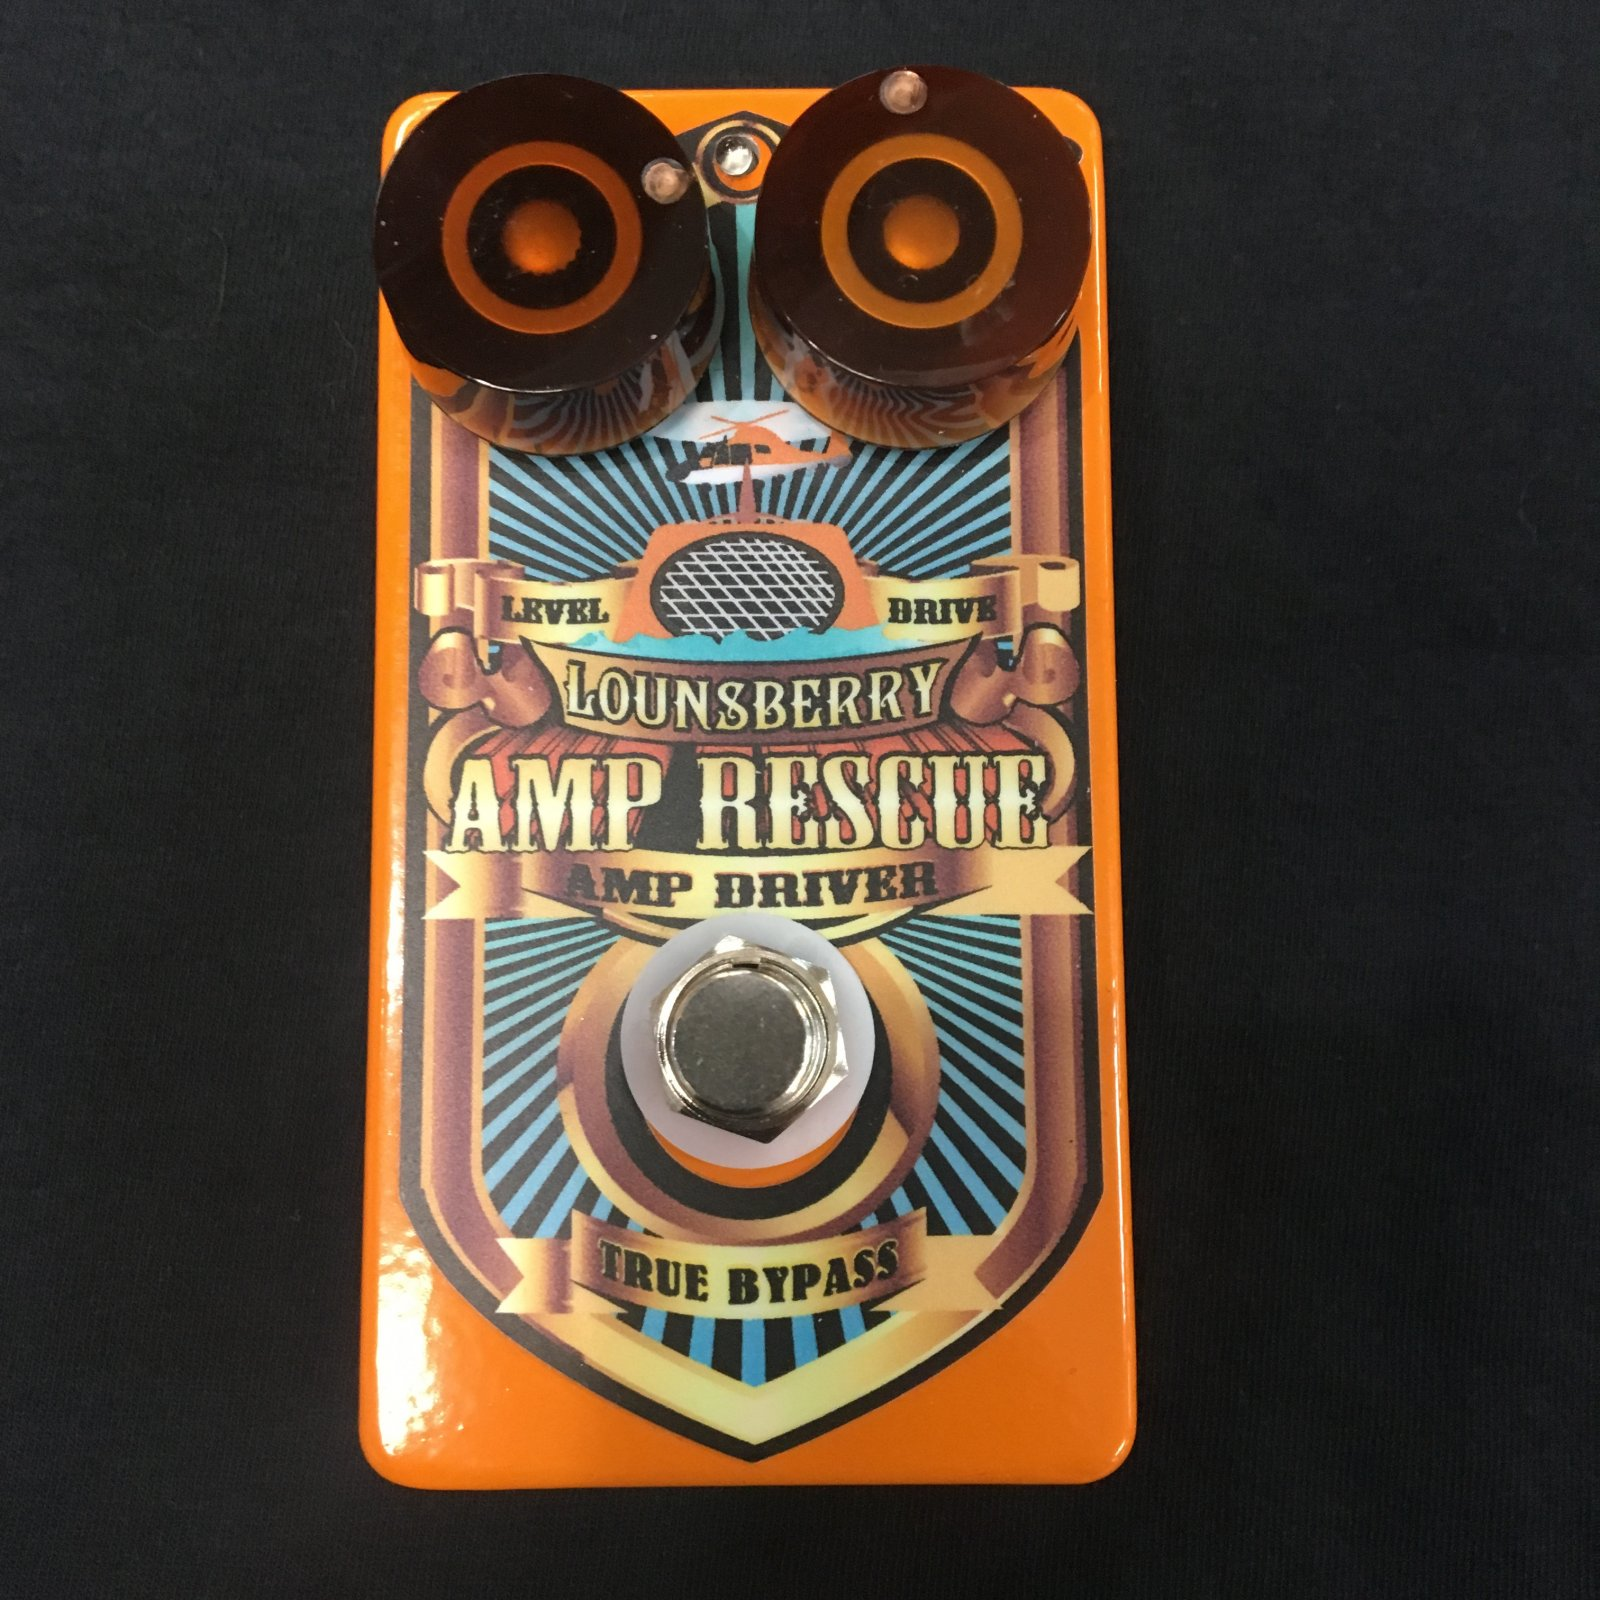 Lounsberry Amp Rescue